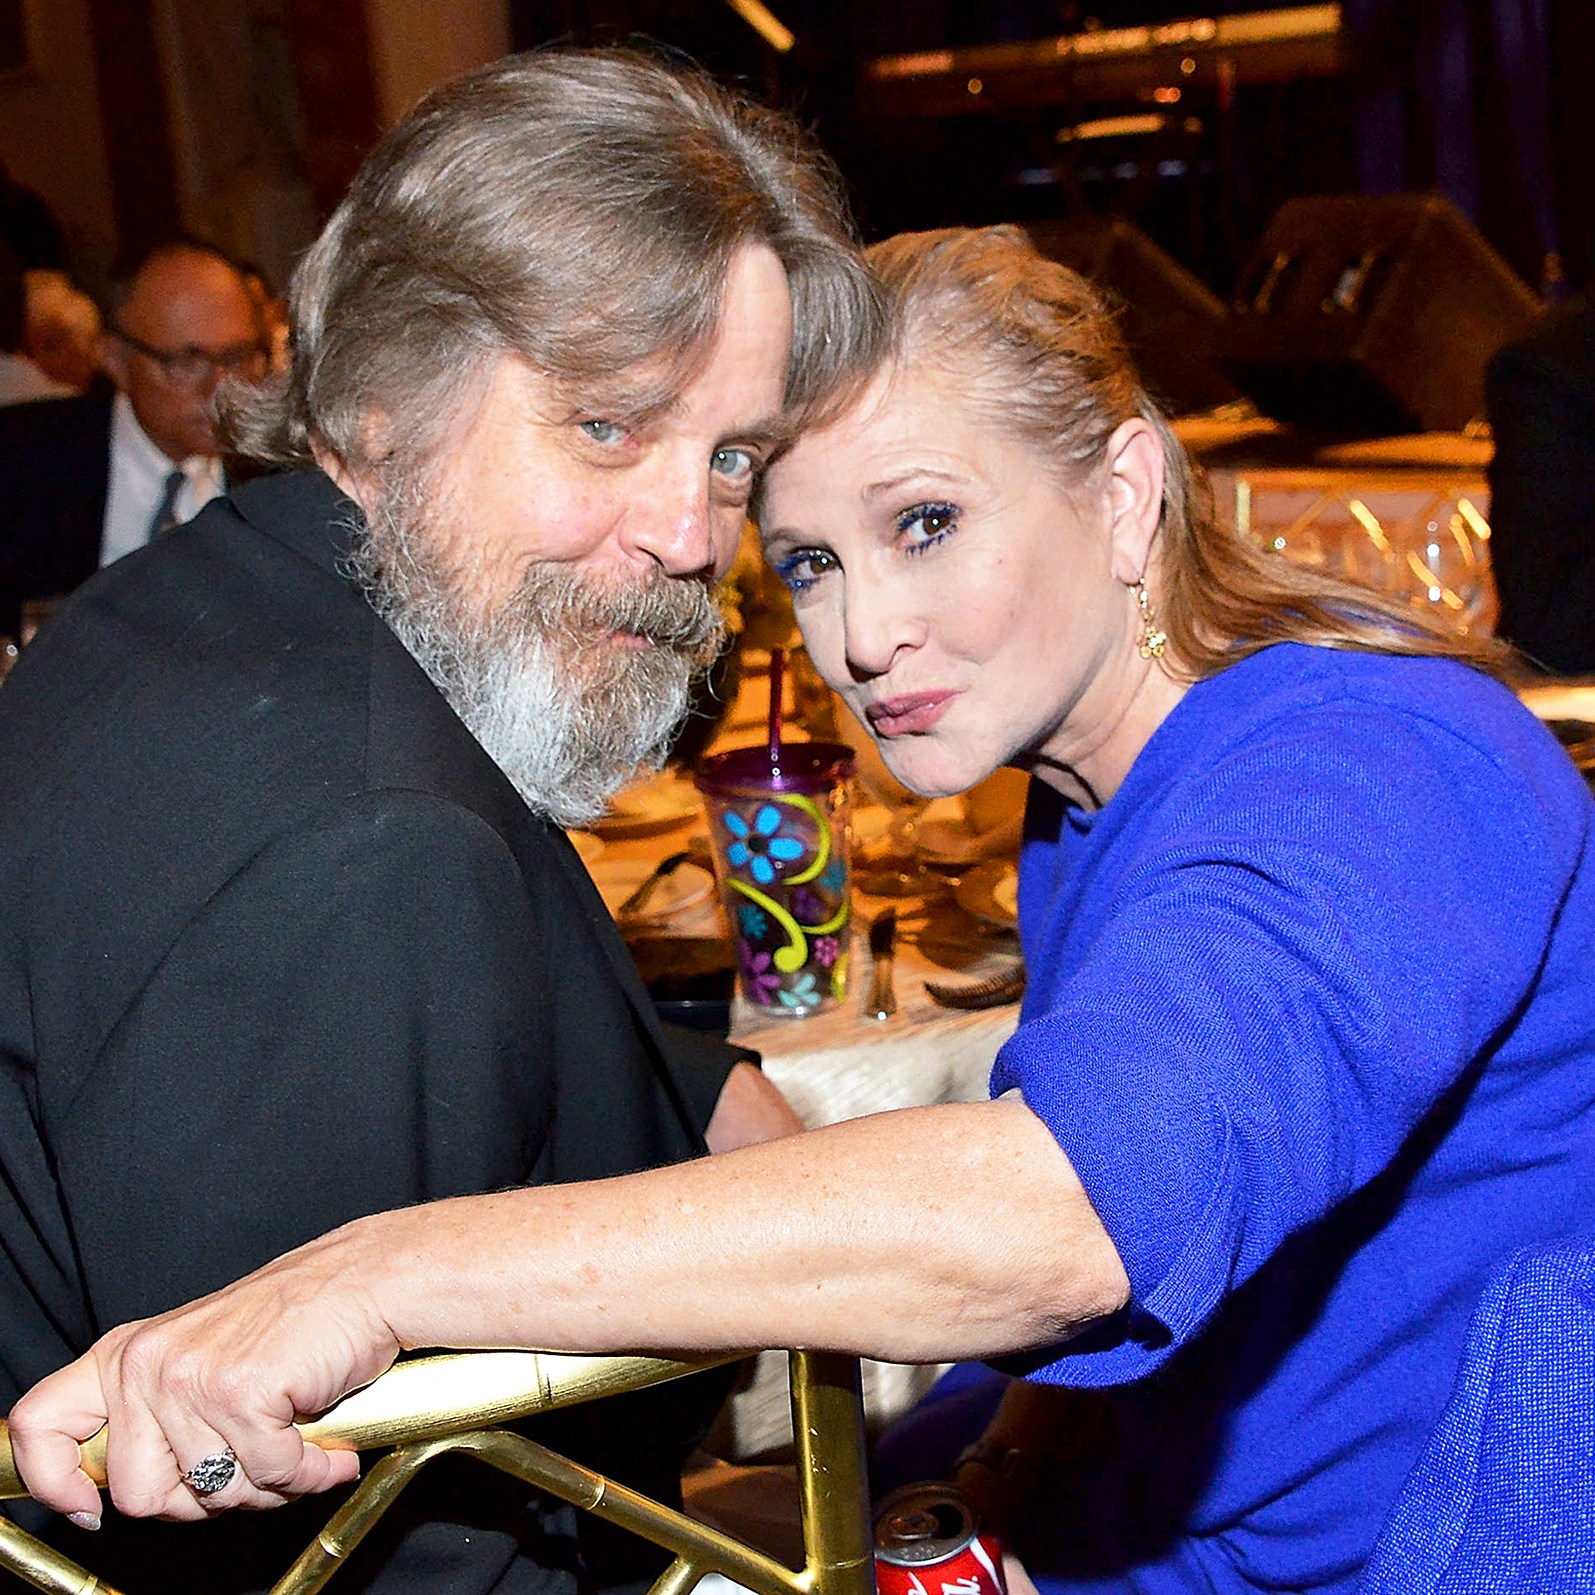 Mark Hamill and Carrie Fisher attend the Midnight Mission's 100 year anniversary Golden Heart Gala held at the Beverly Wilshire Four Seasons Hotel in Beverly Hills, California.